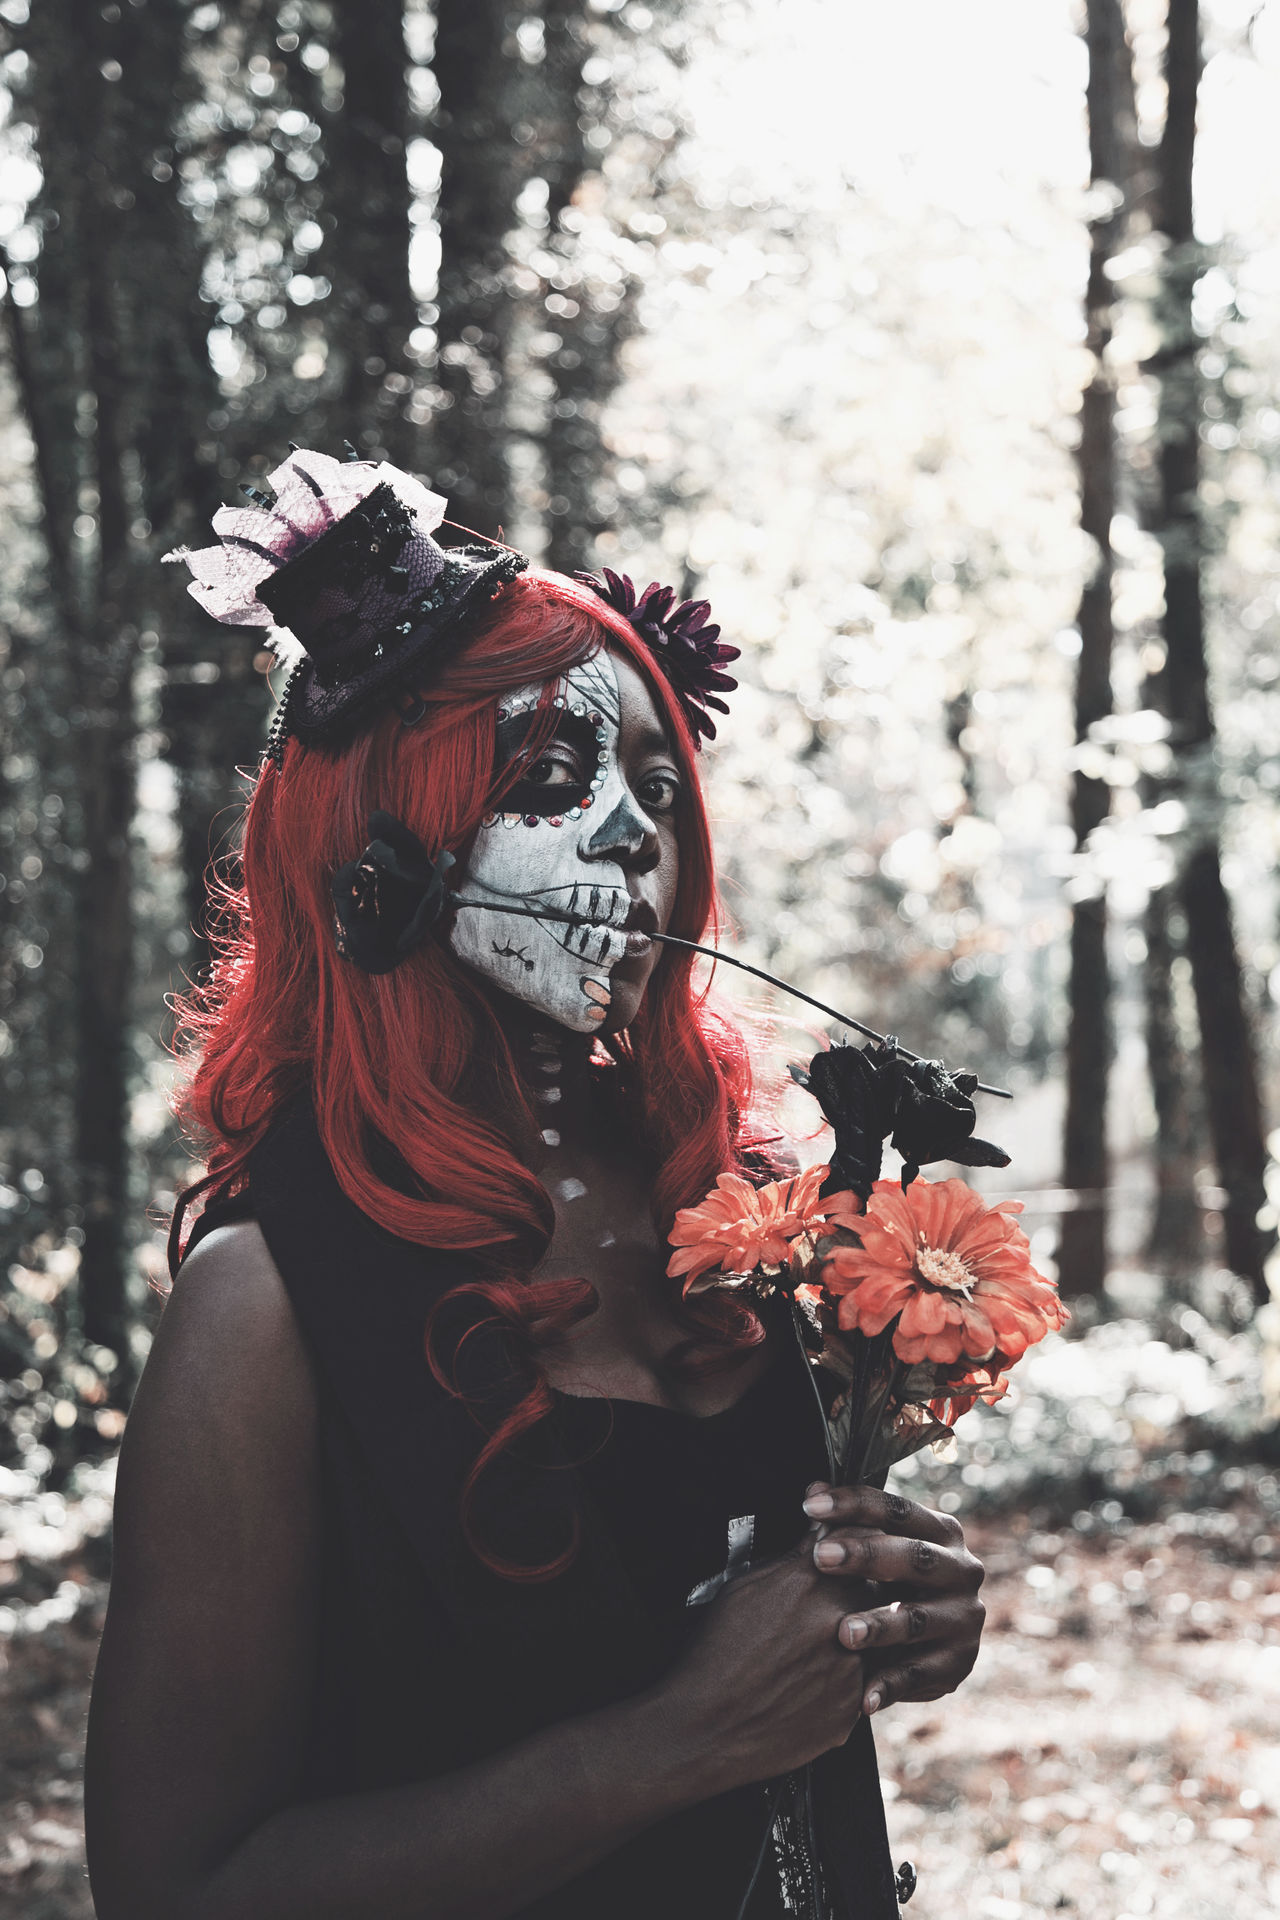 Accesories Adult Costume Dark Day Day Of The Dead Flowers Halloween Makeup One Person Only Women People Portrait Real People Red Tree Women Women Who Inspire You Uniqueness